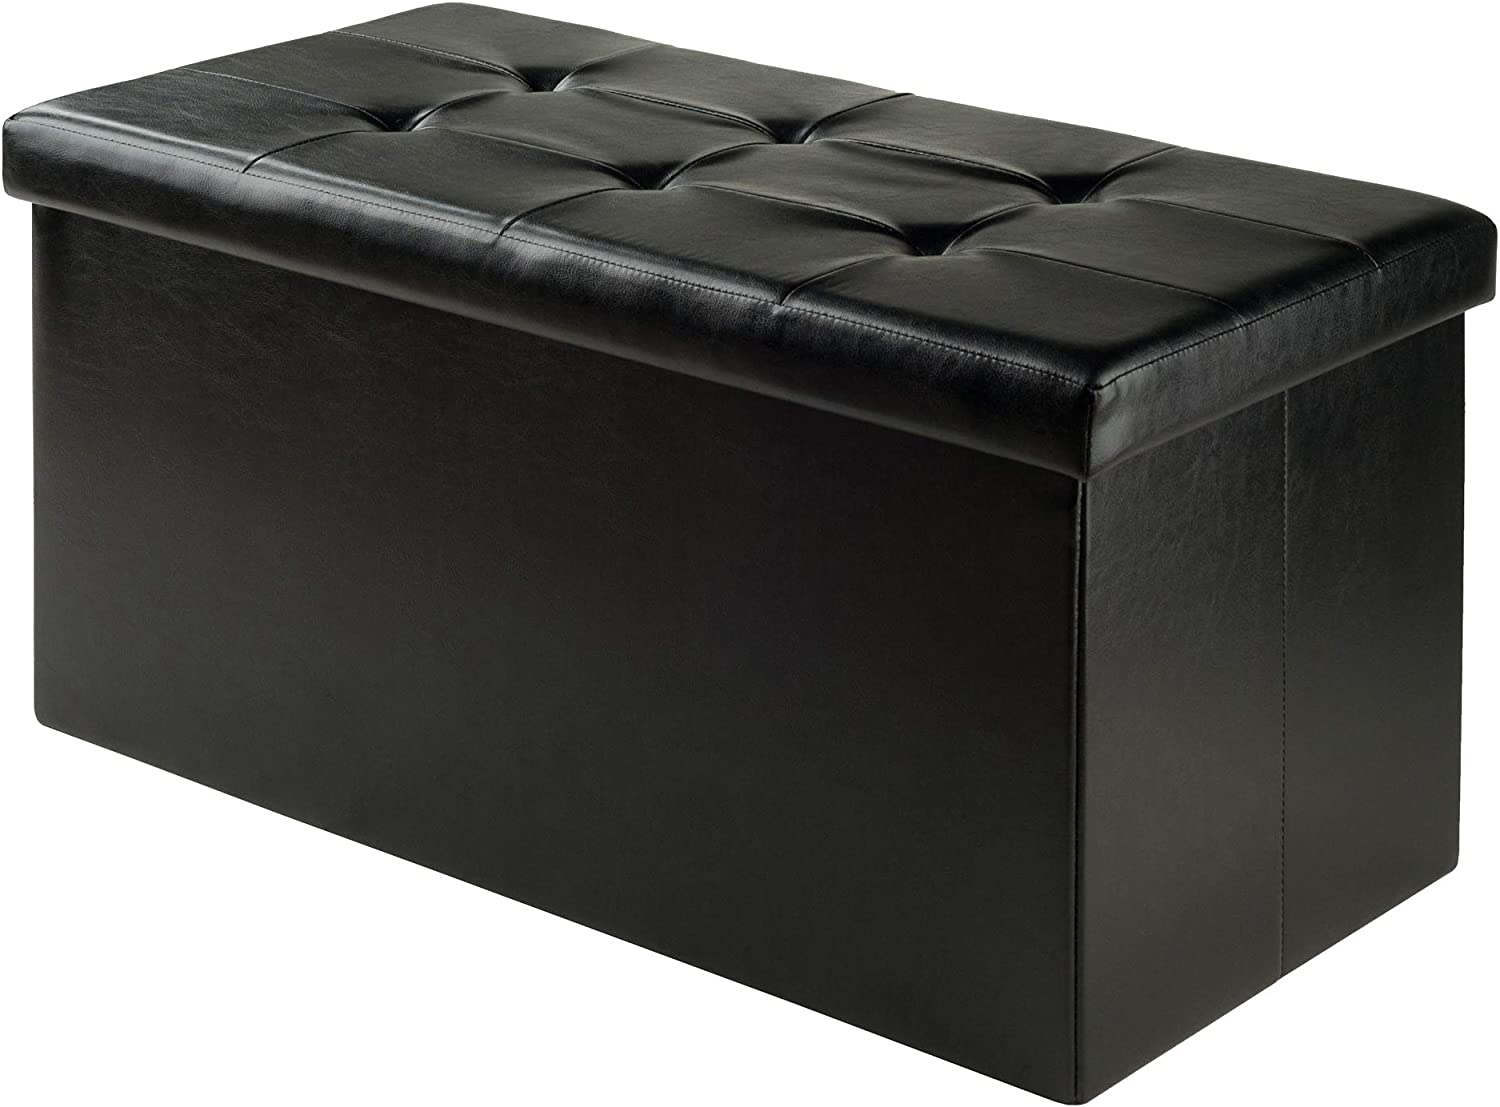 Winsome Wood Furniture piece Ashford Ottoman with Storage Faux Leather, Black